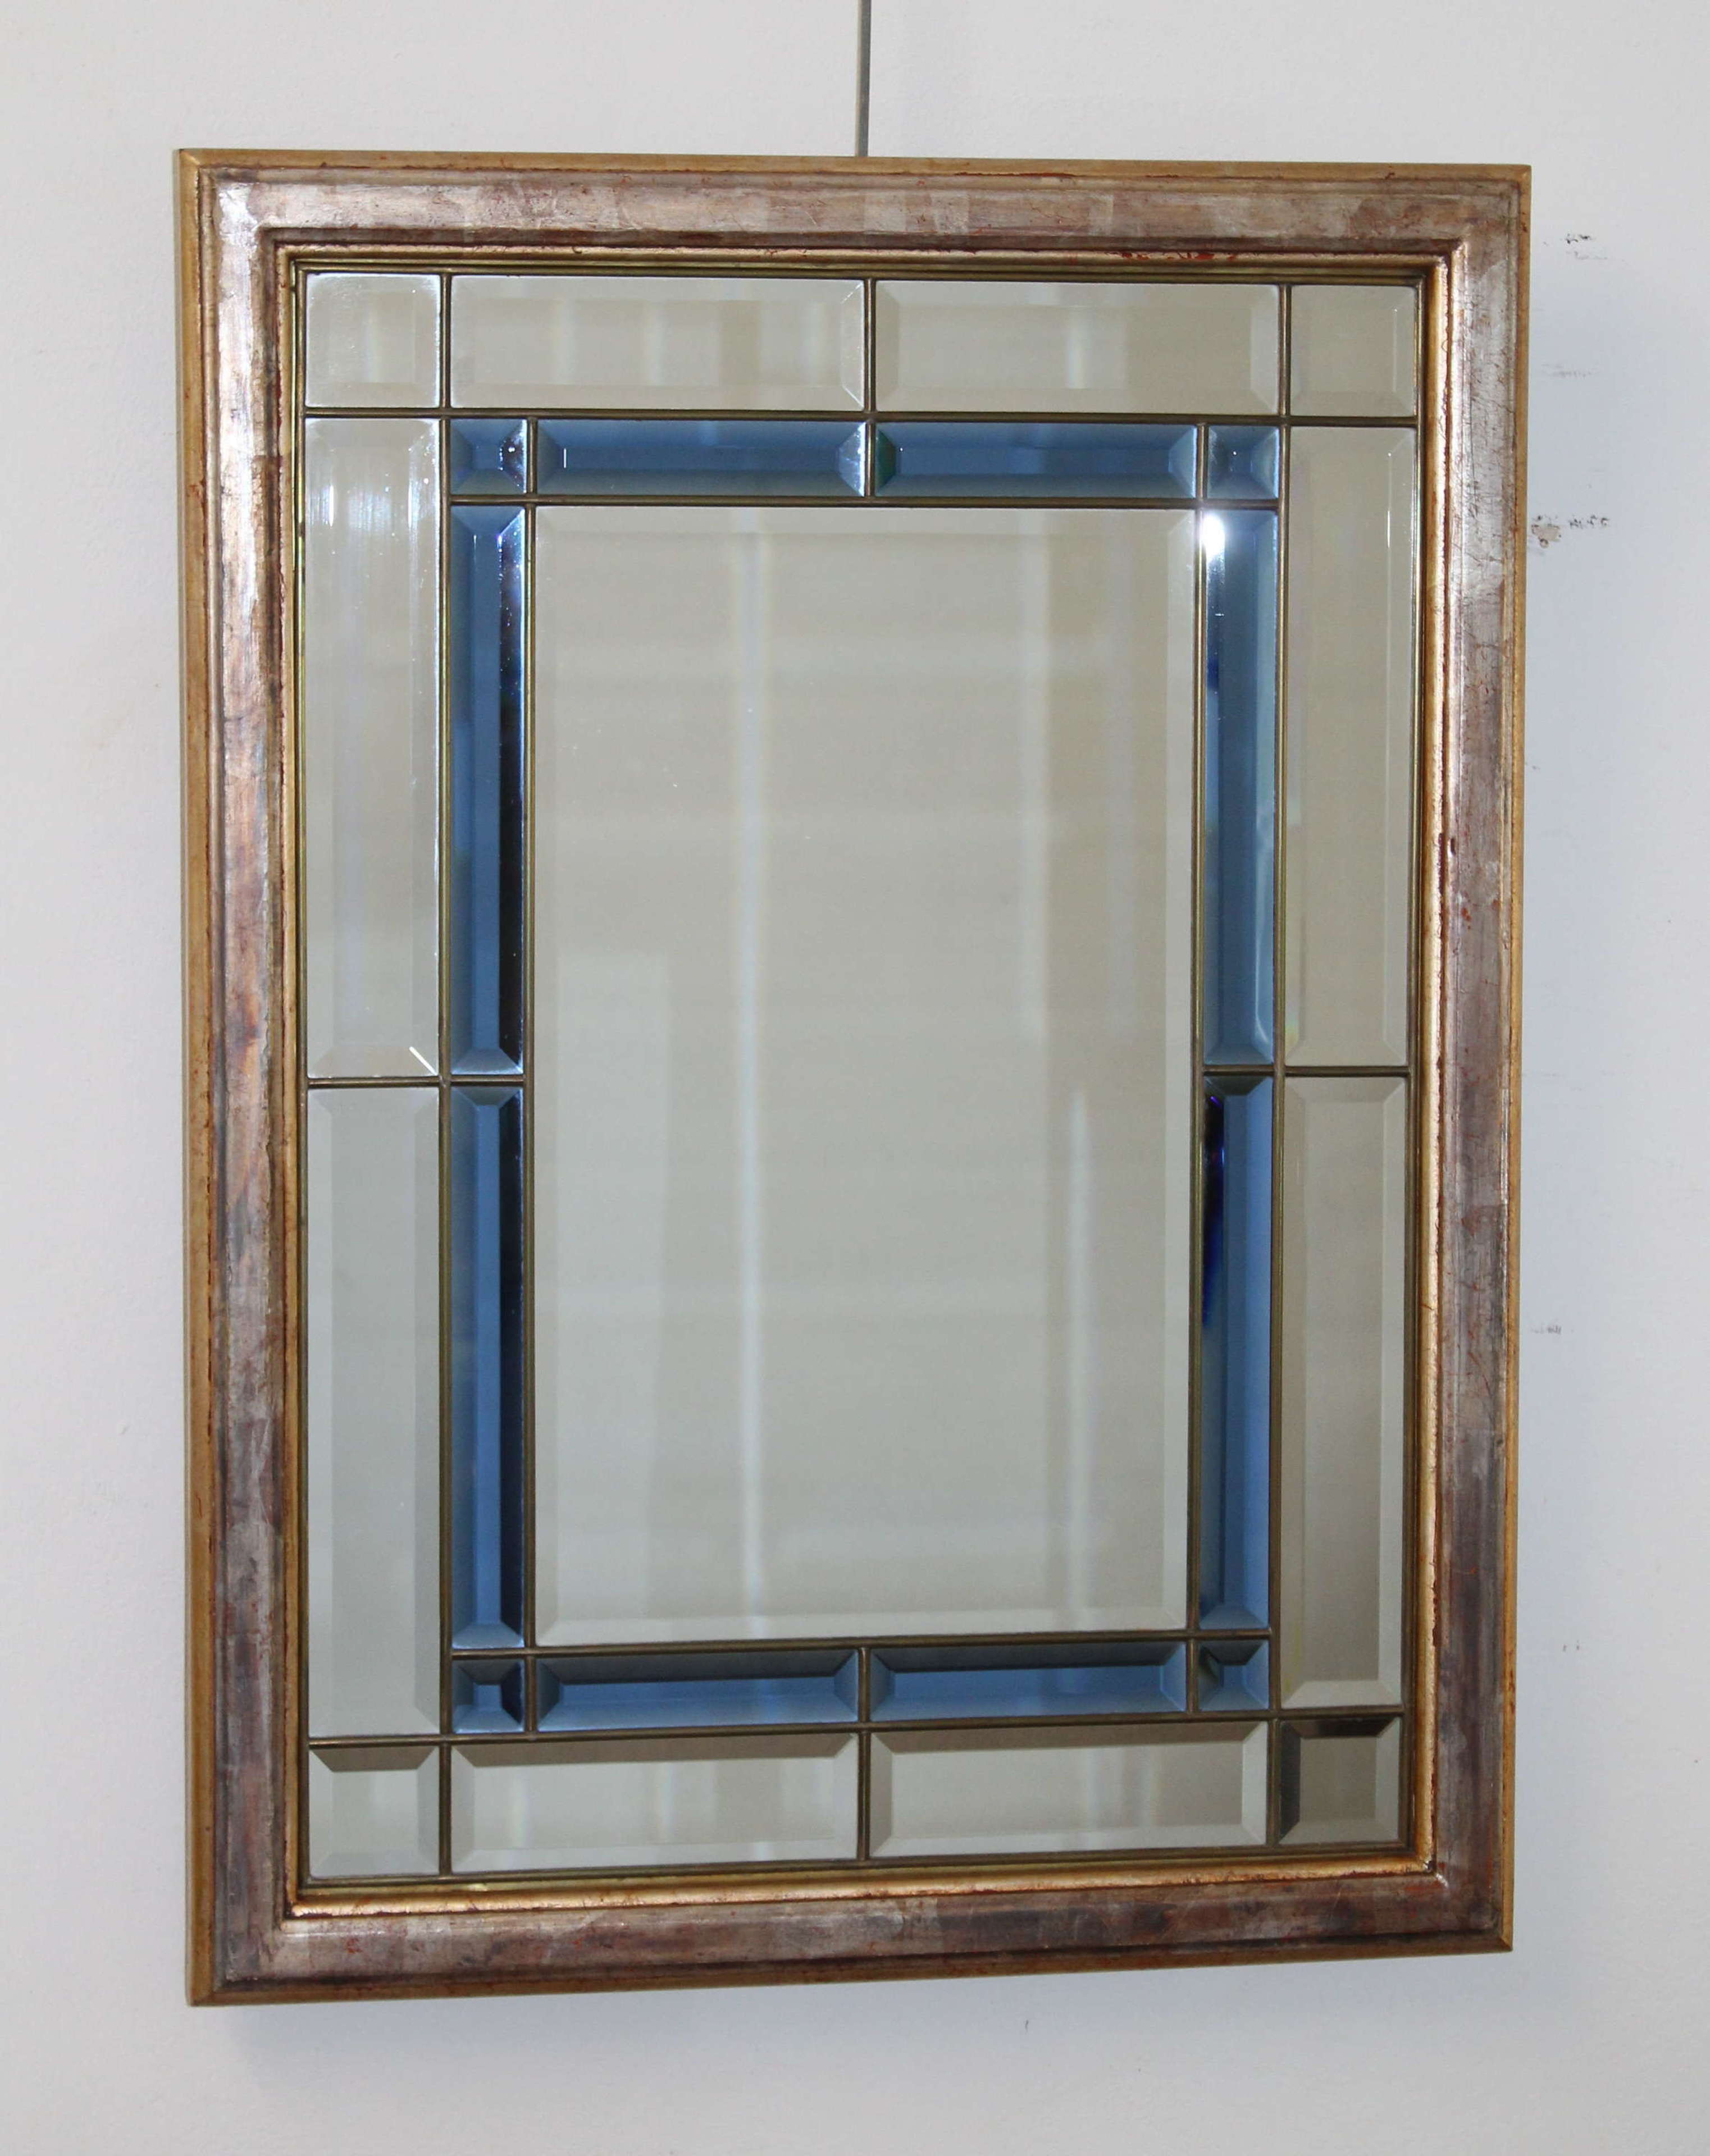 Vintage mirror with sectioned bevelled glass